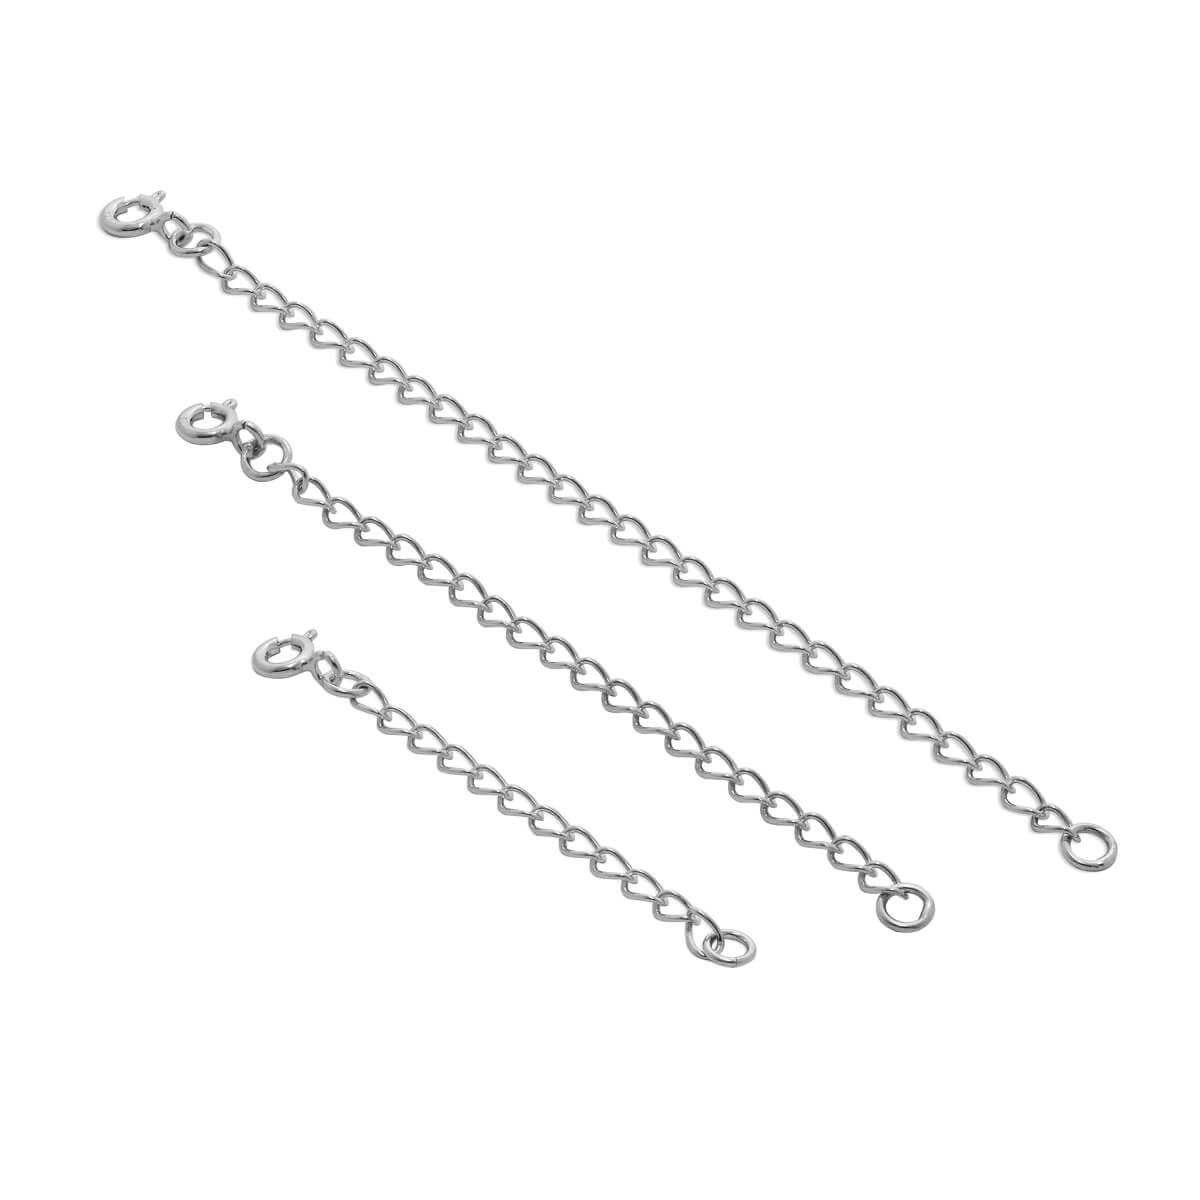 2-4 Inch Sterling Silver Curb Extender Chain with Bolt Clasp